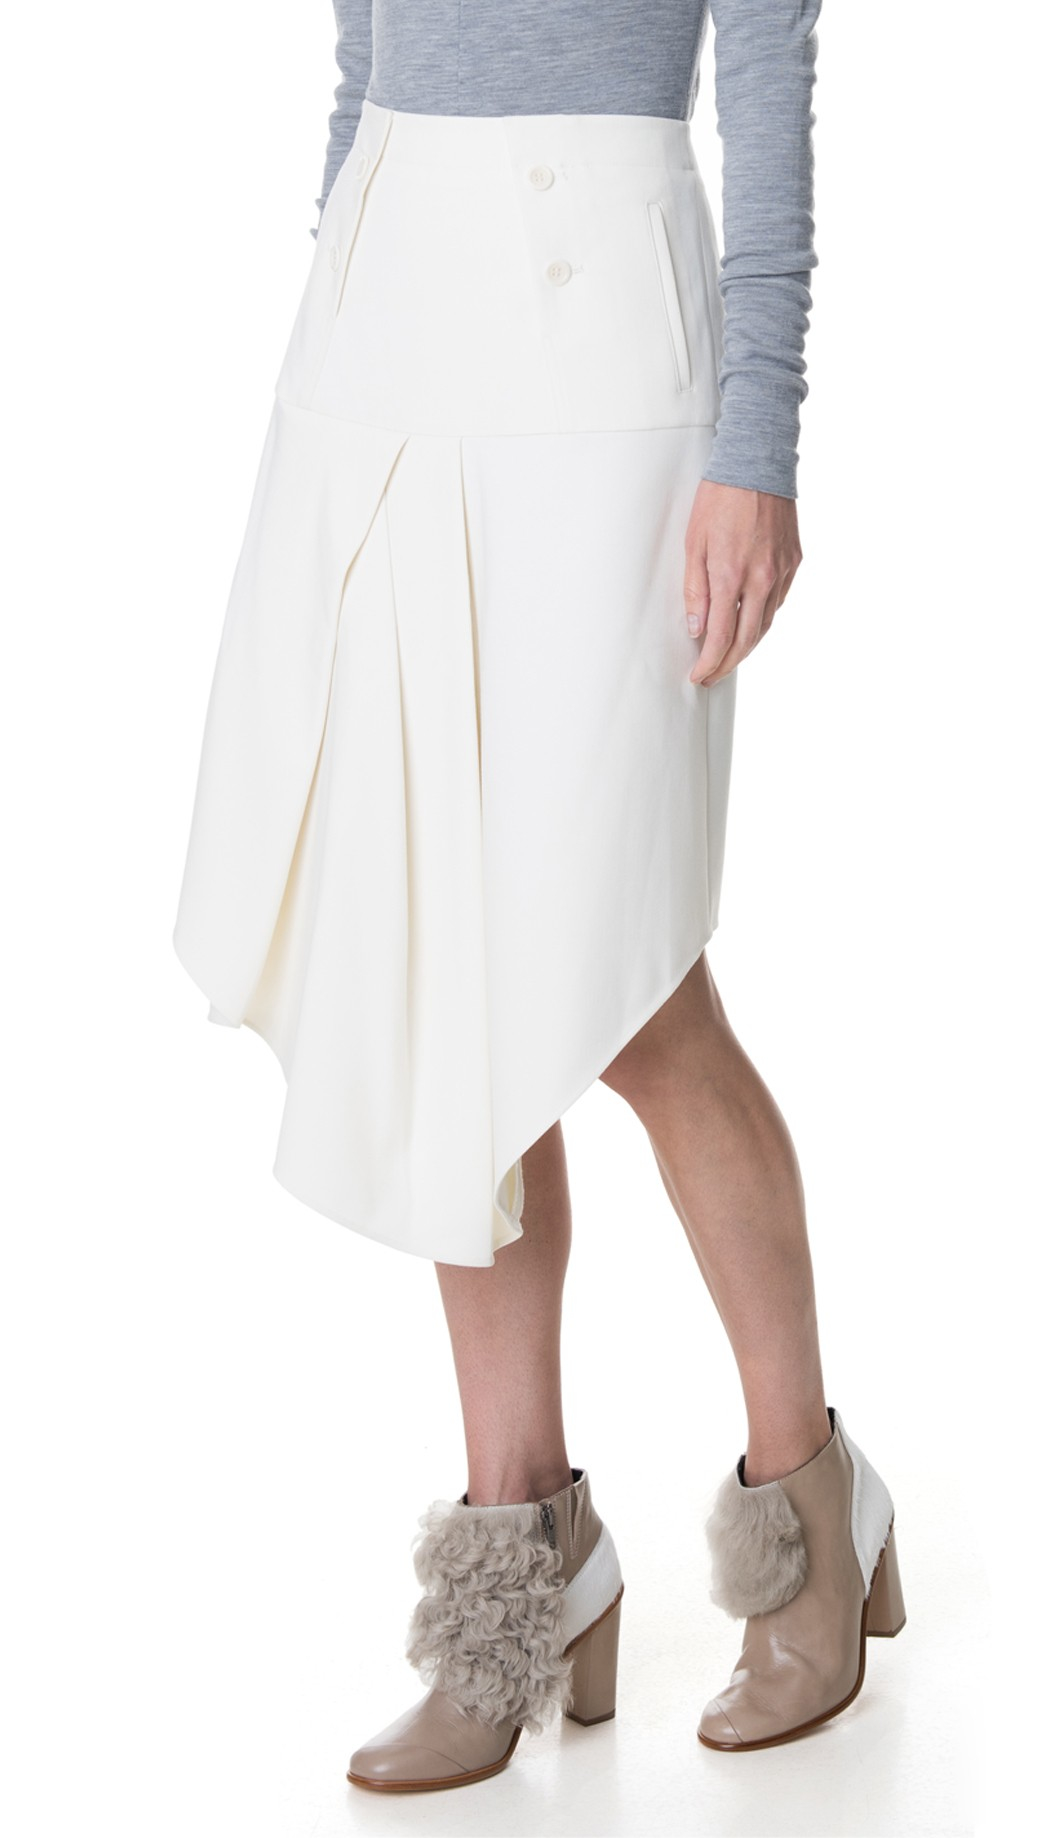 drapes luxury en girl skirt anniversary draped ivory baby dress with boutique